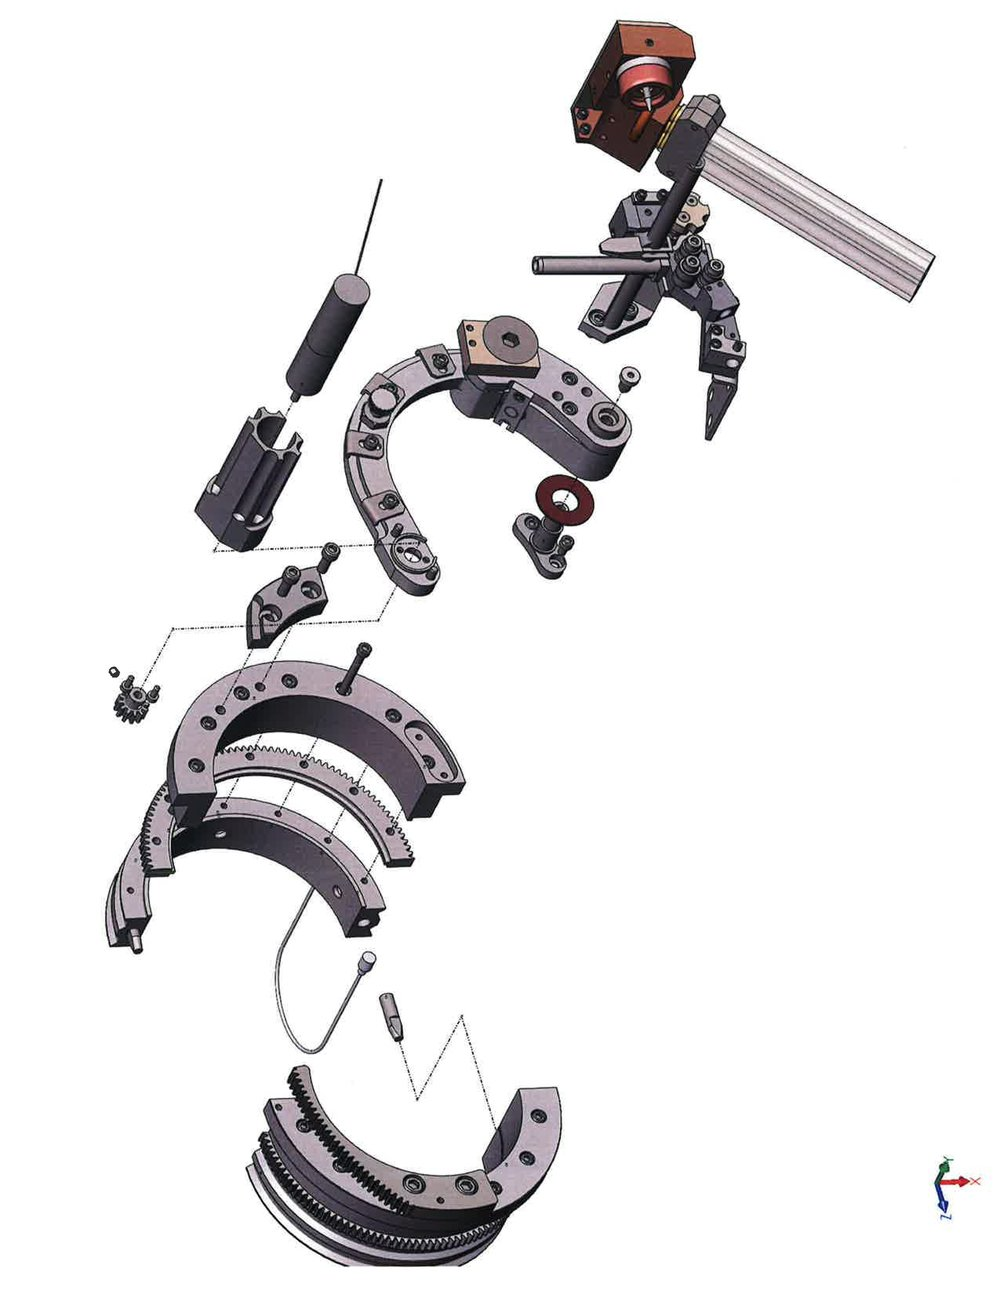 An exploded view of the rotor assembly.